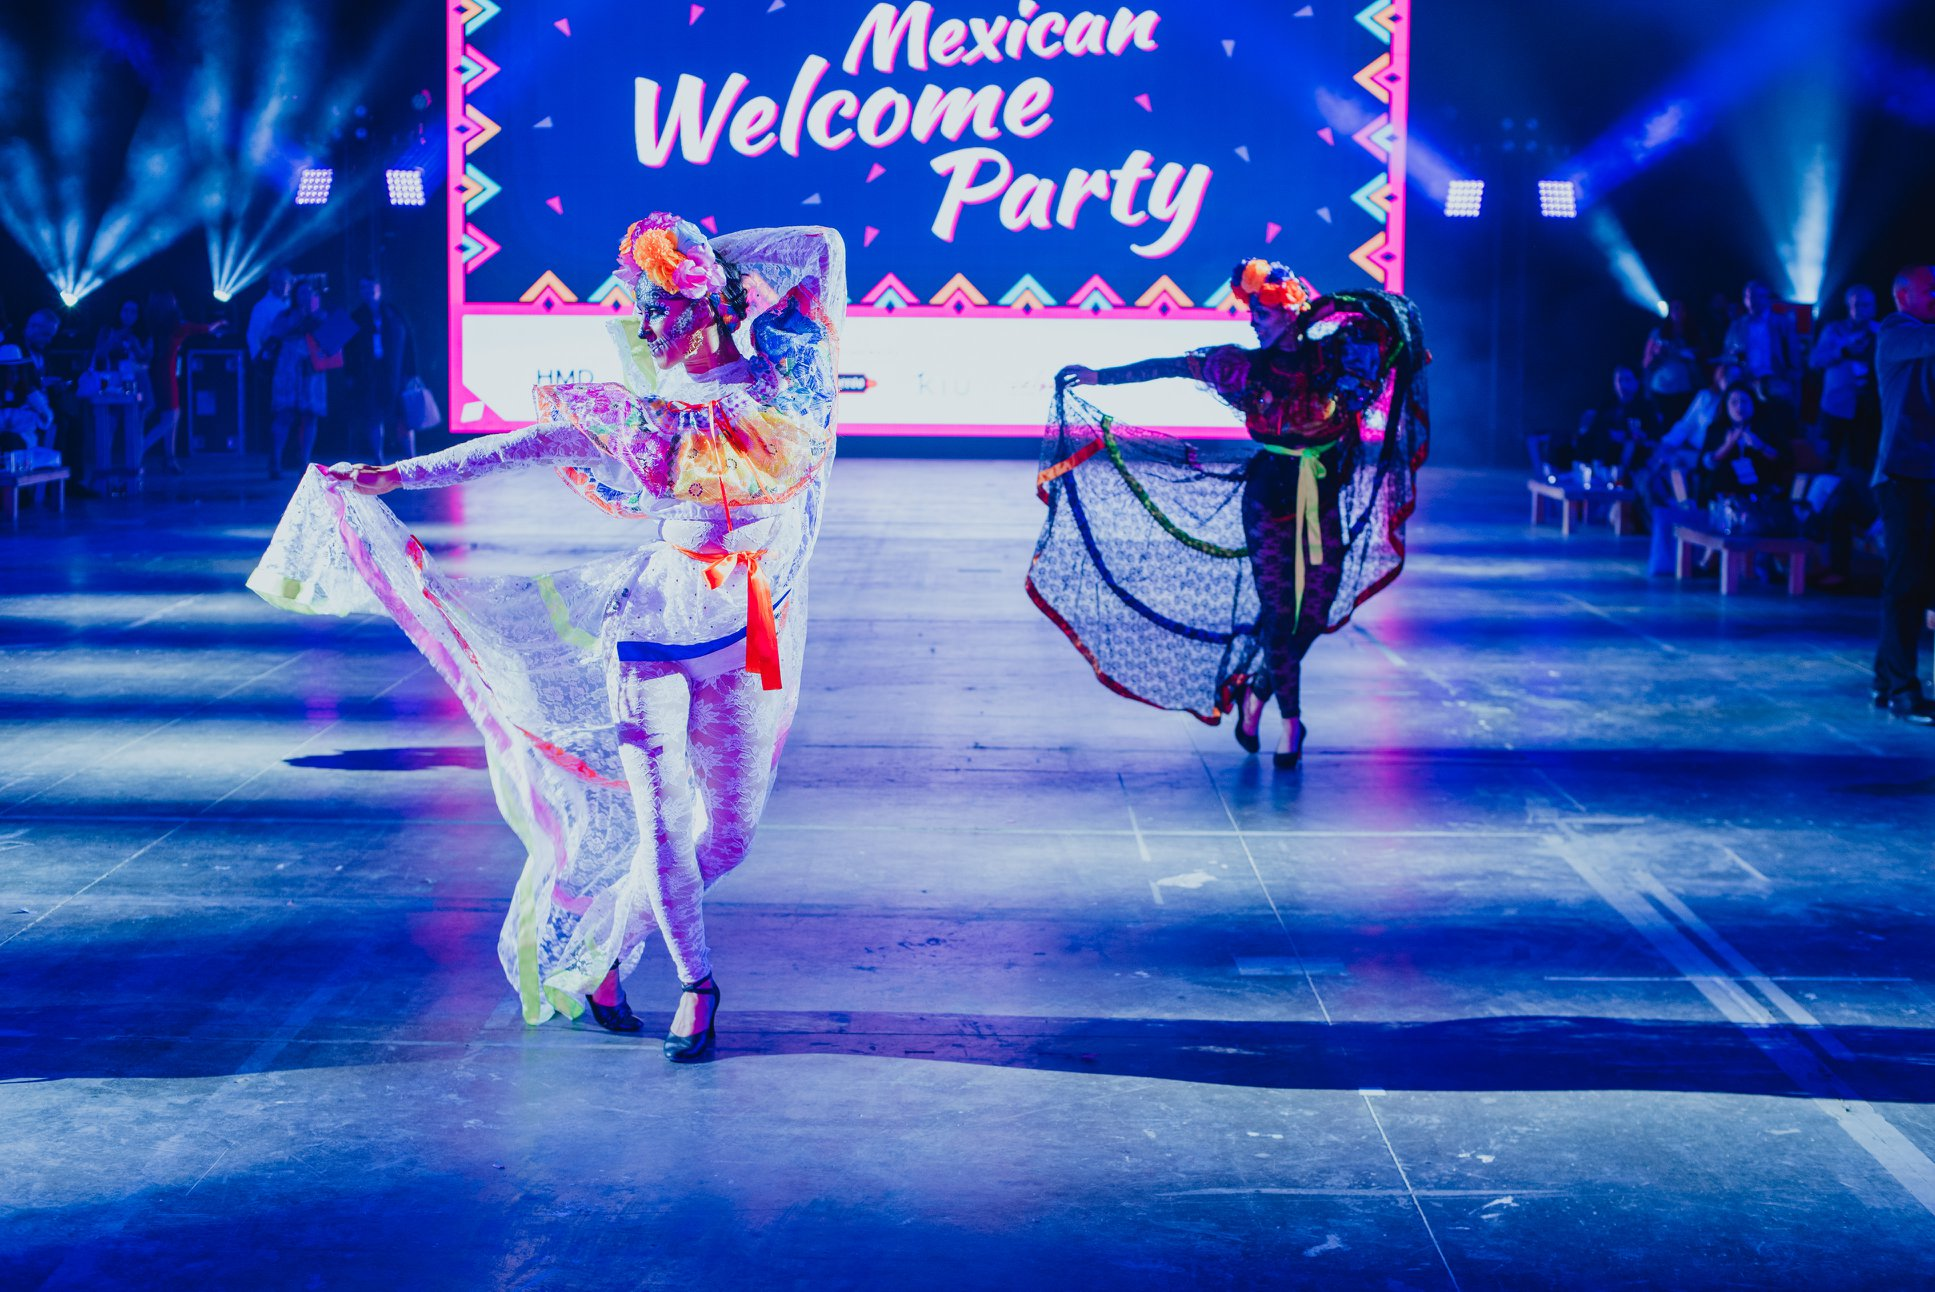 Mexican Welcome Party ibtm